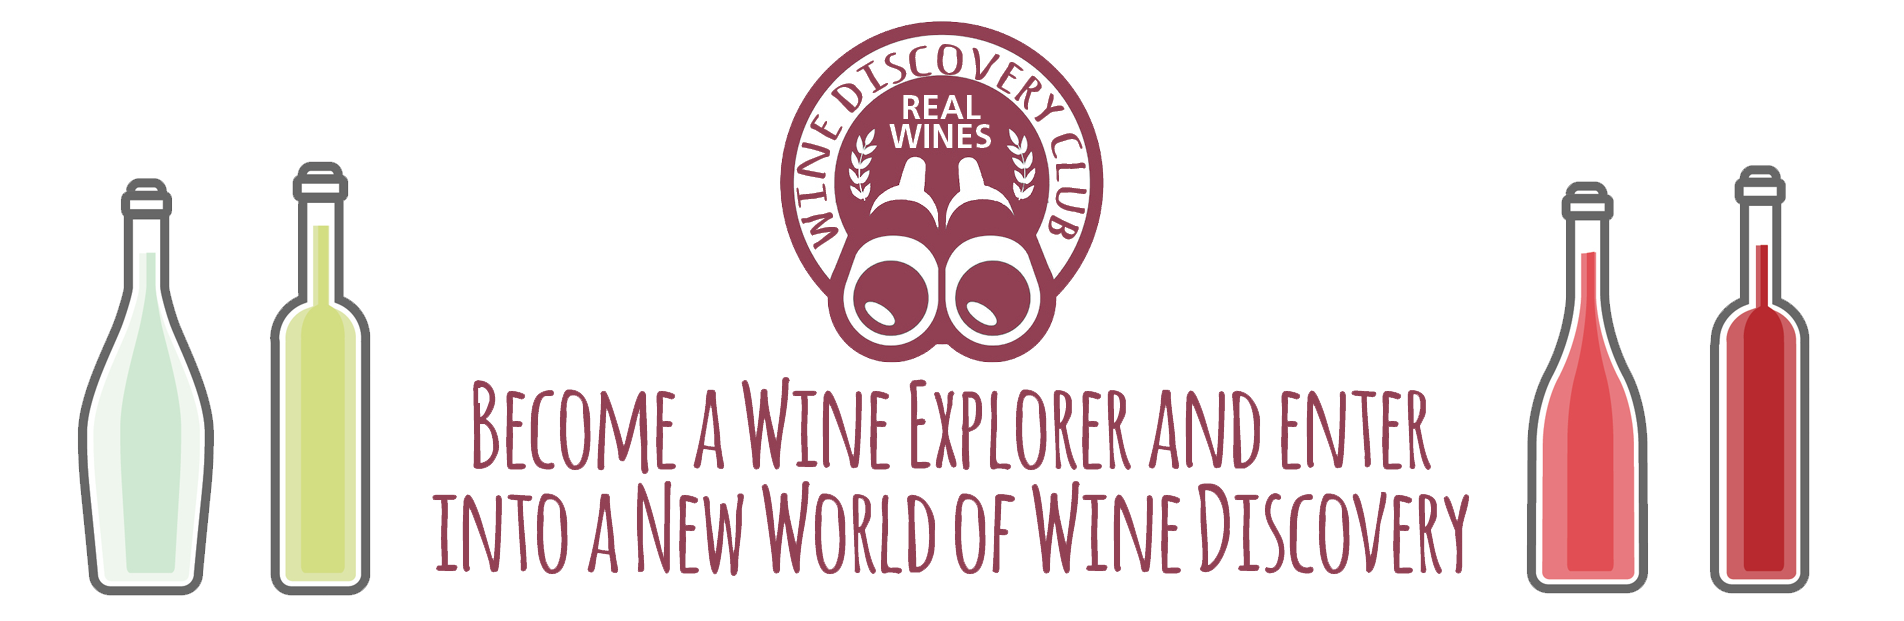 Real wine from real farmers, biodynamic, organic